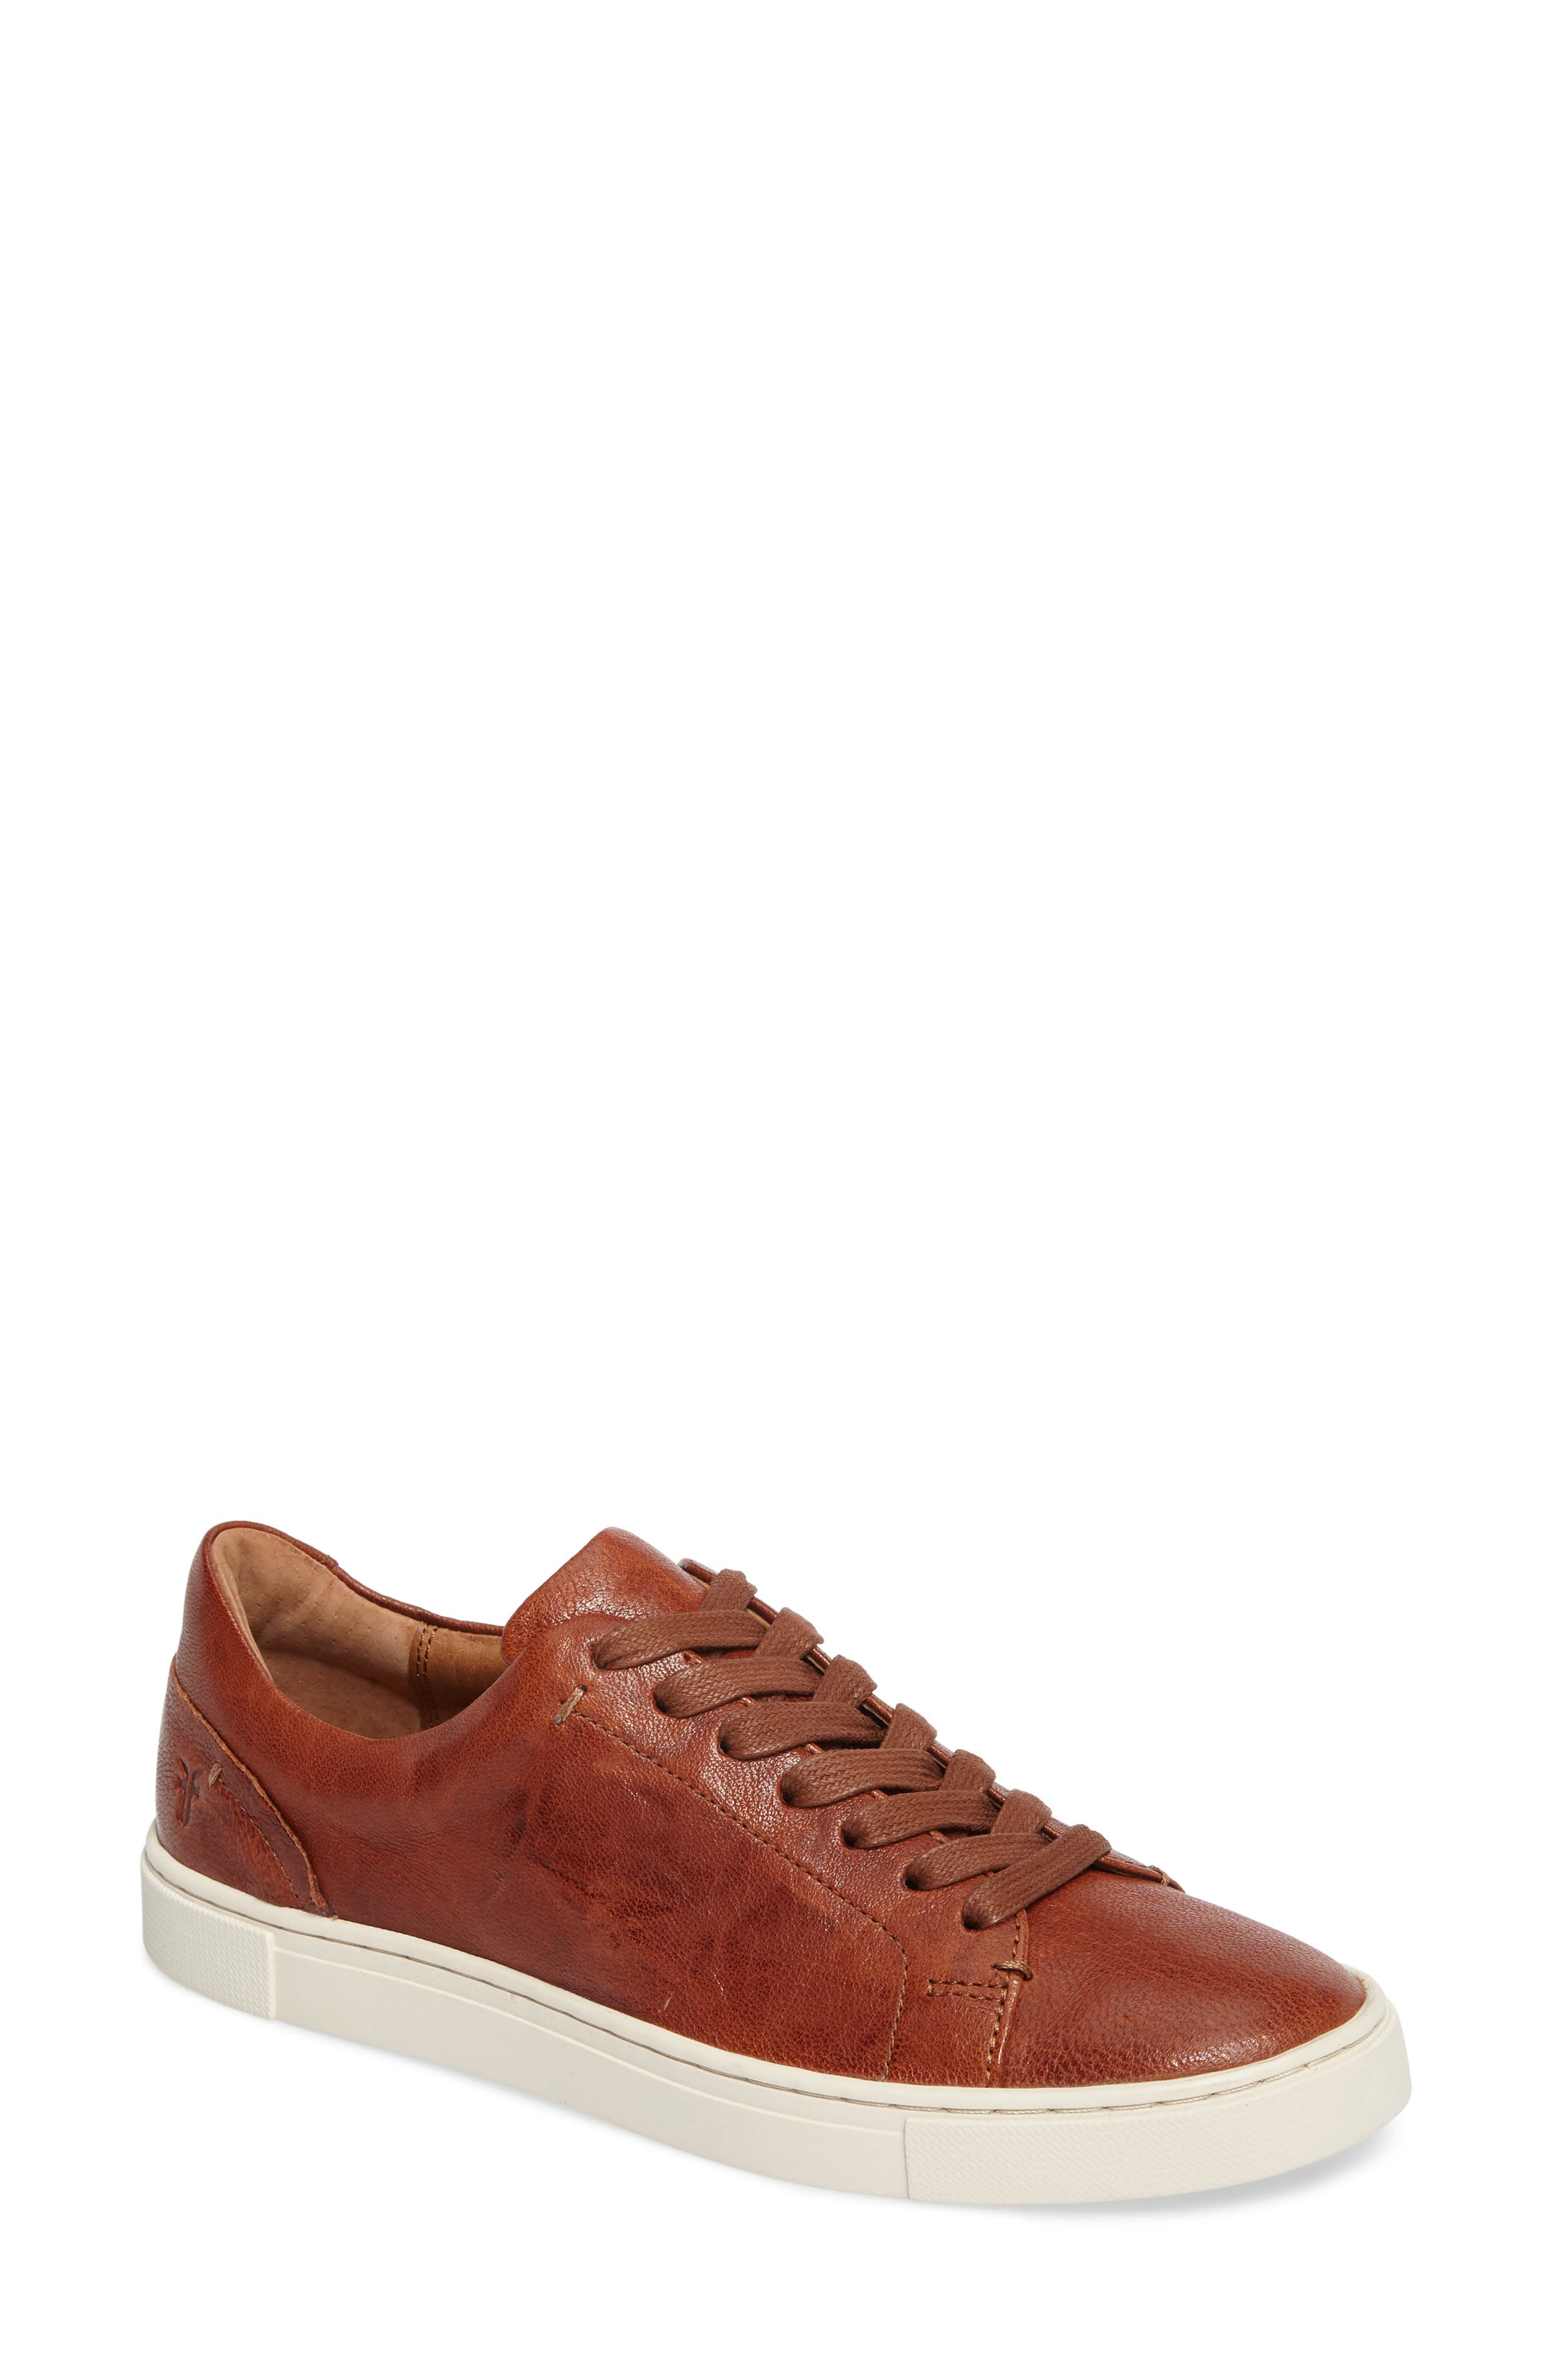 Ivy Sneaker,                         Main,                         color, Cognac